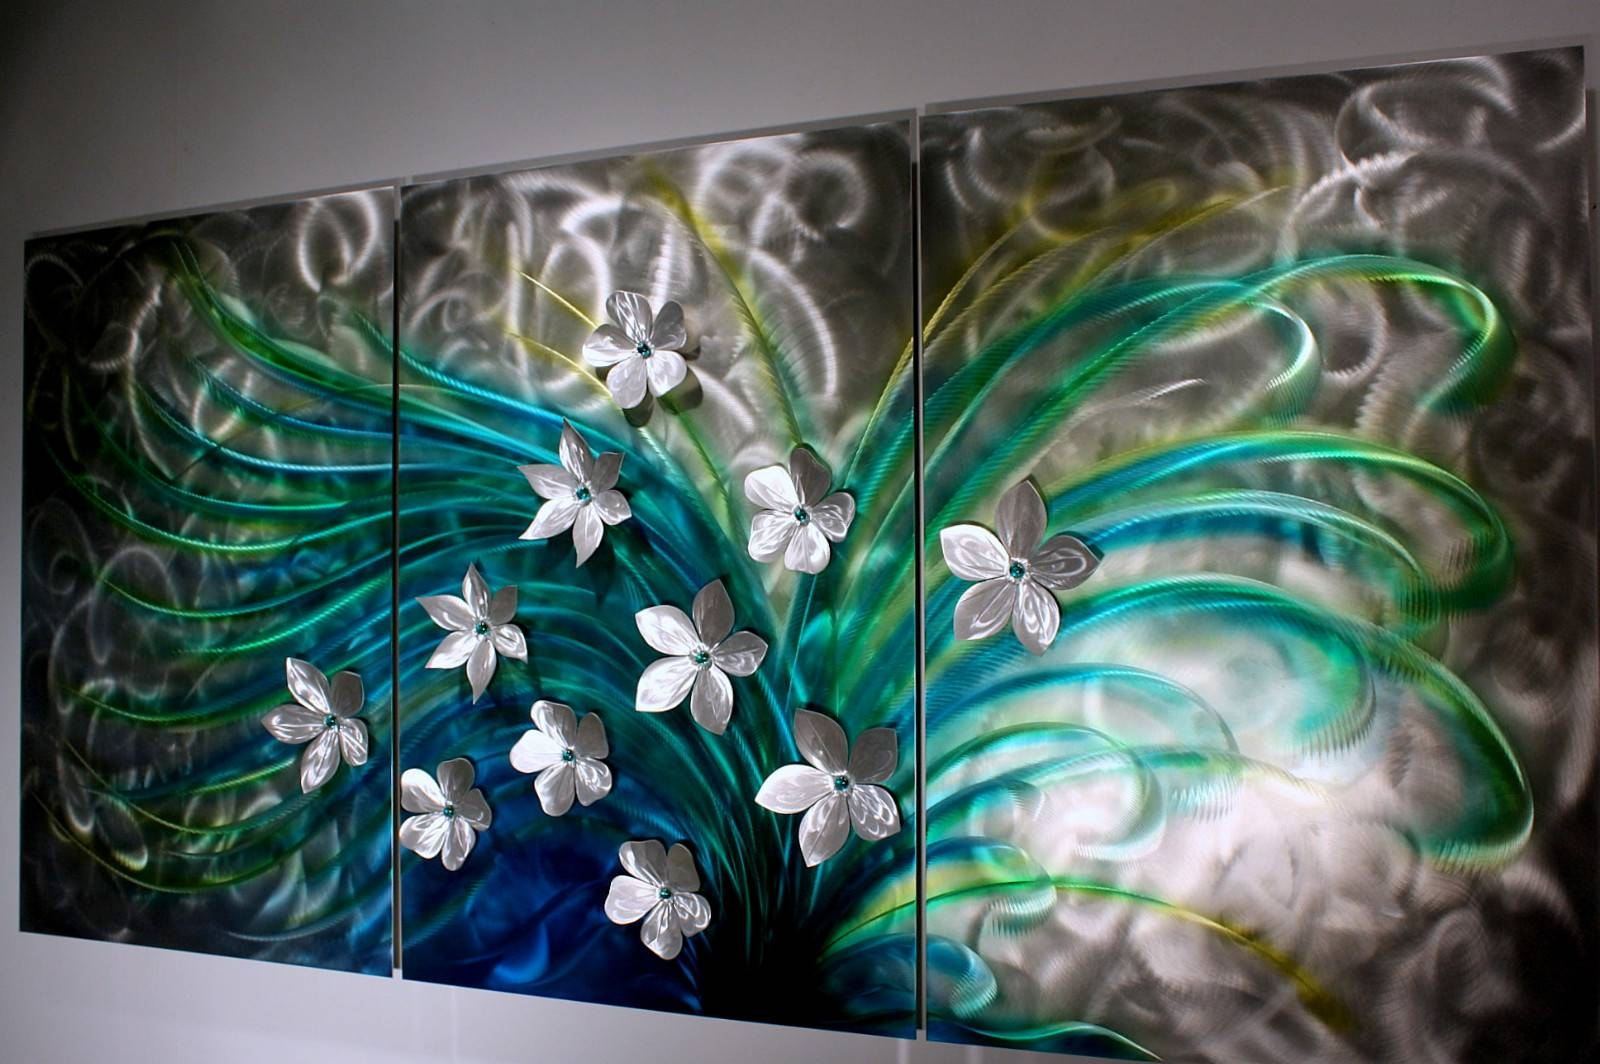 Smothery Wilmos Kovacs Metal Wall Sculpture Abstract Rainbow Paint Throughout Most Up To Date Metal Wall Art Decor And Sculptures (View 15 of 20)